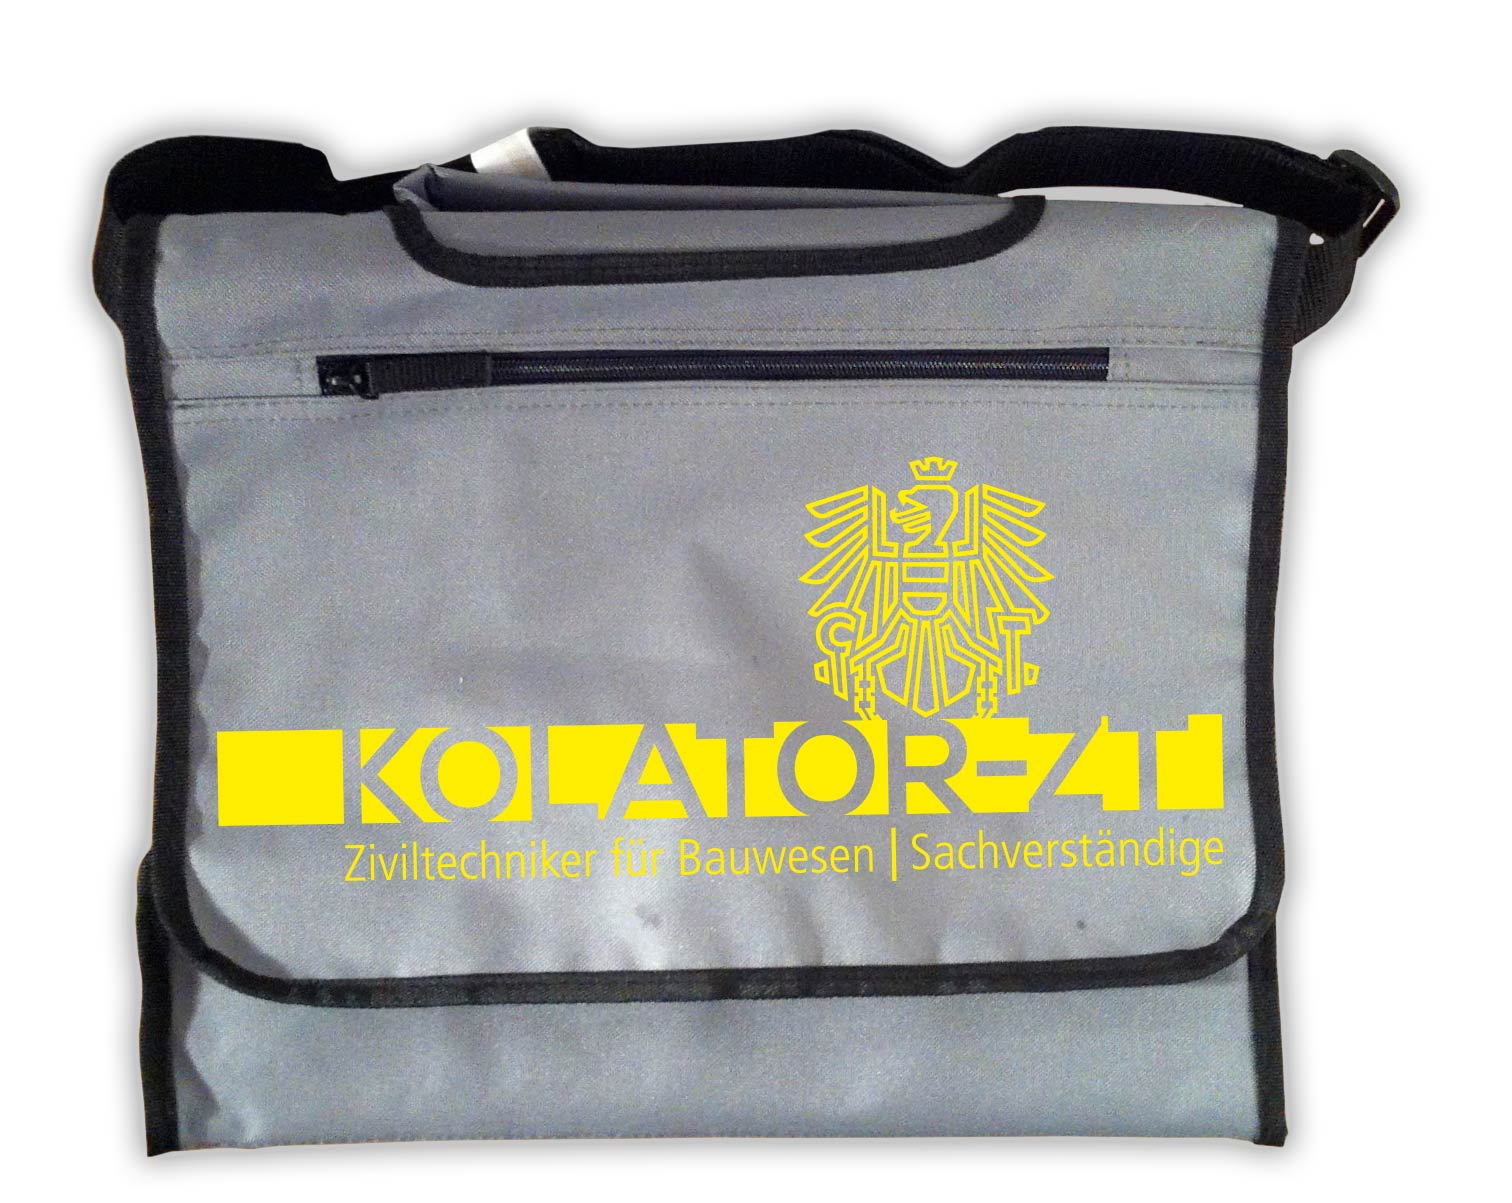 Kolator ZT GmbH Messenger Bag